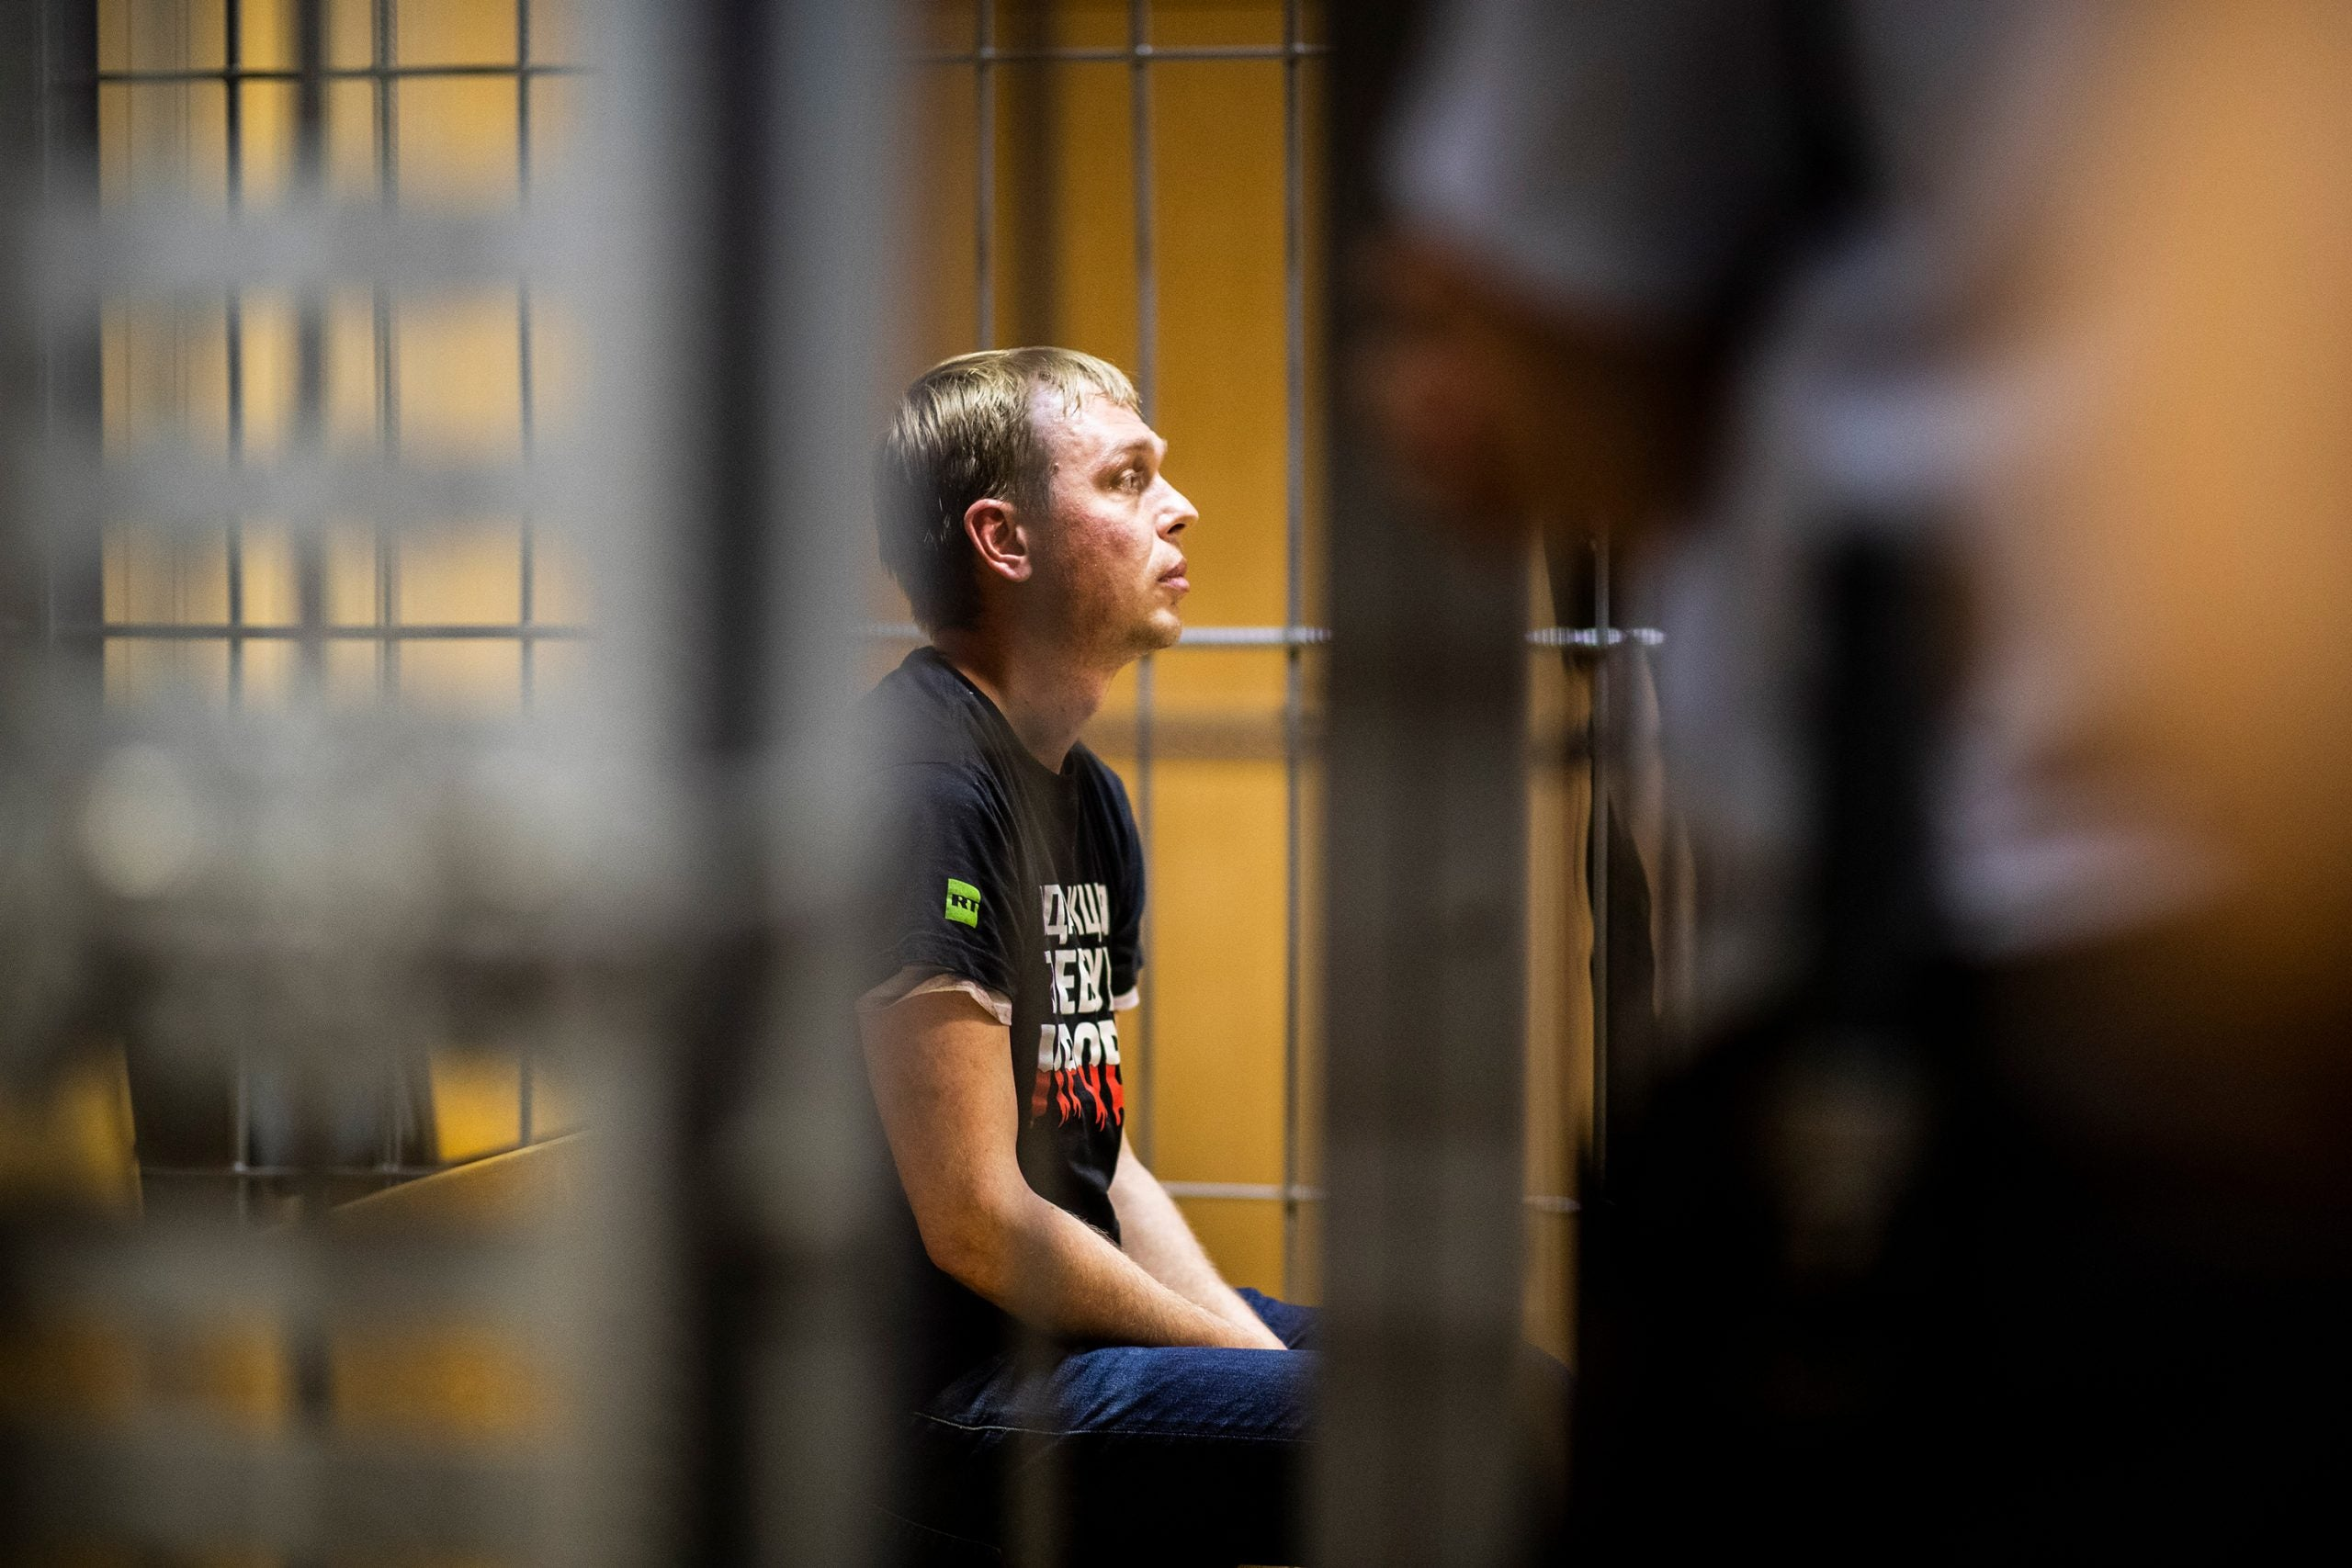 The arrest of Ivan Golunov is just the latest symptom of Russia's crackdown on media freedom